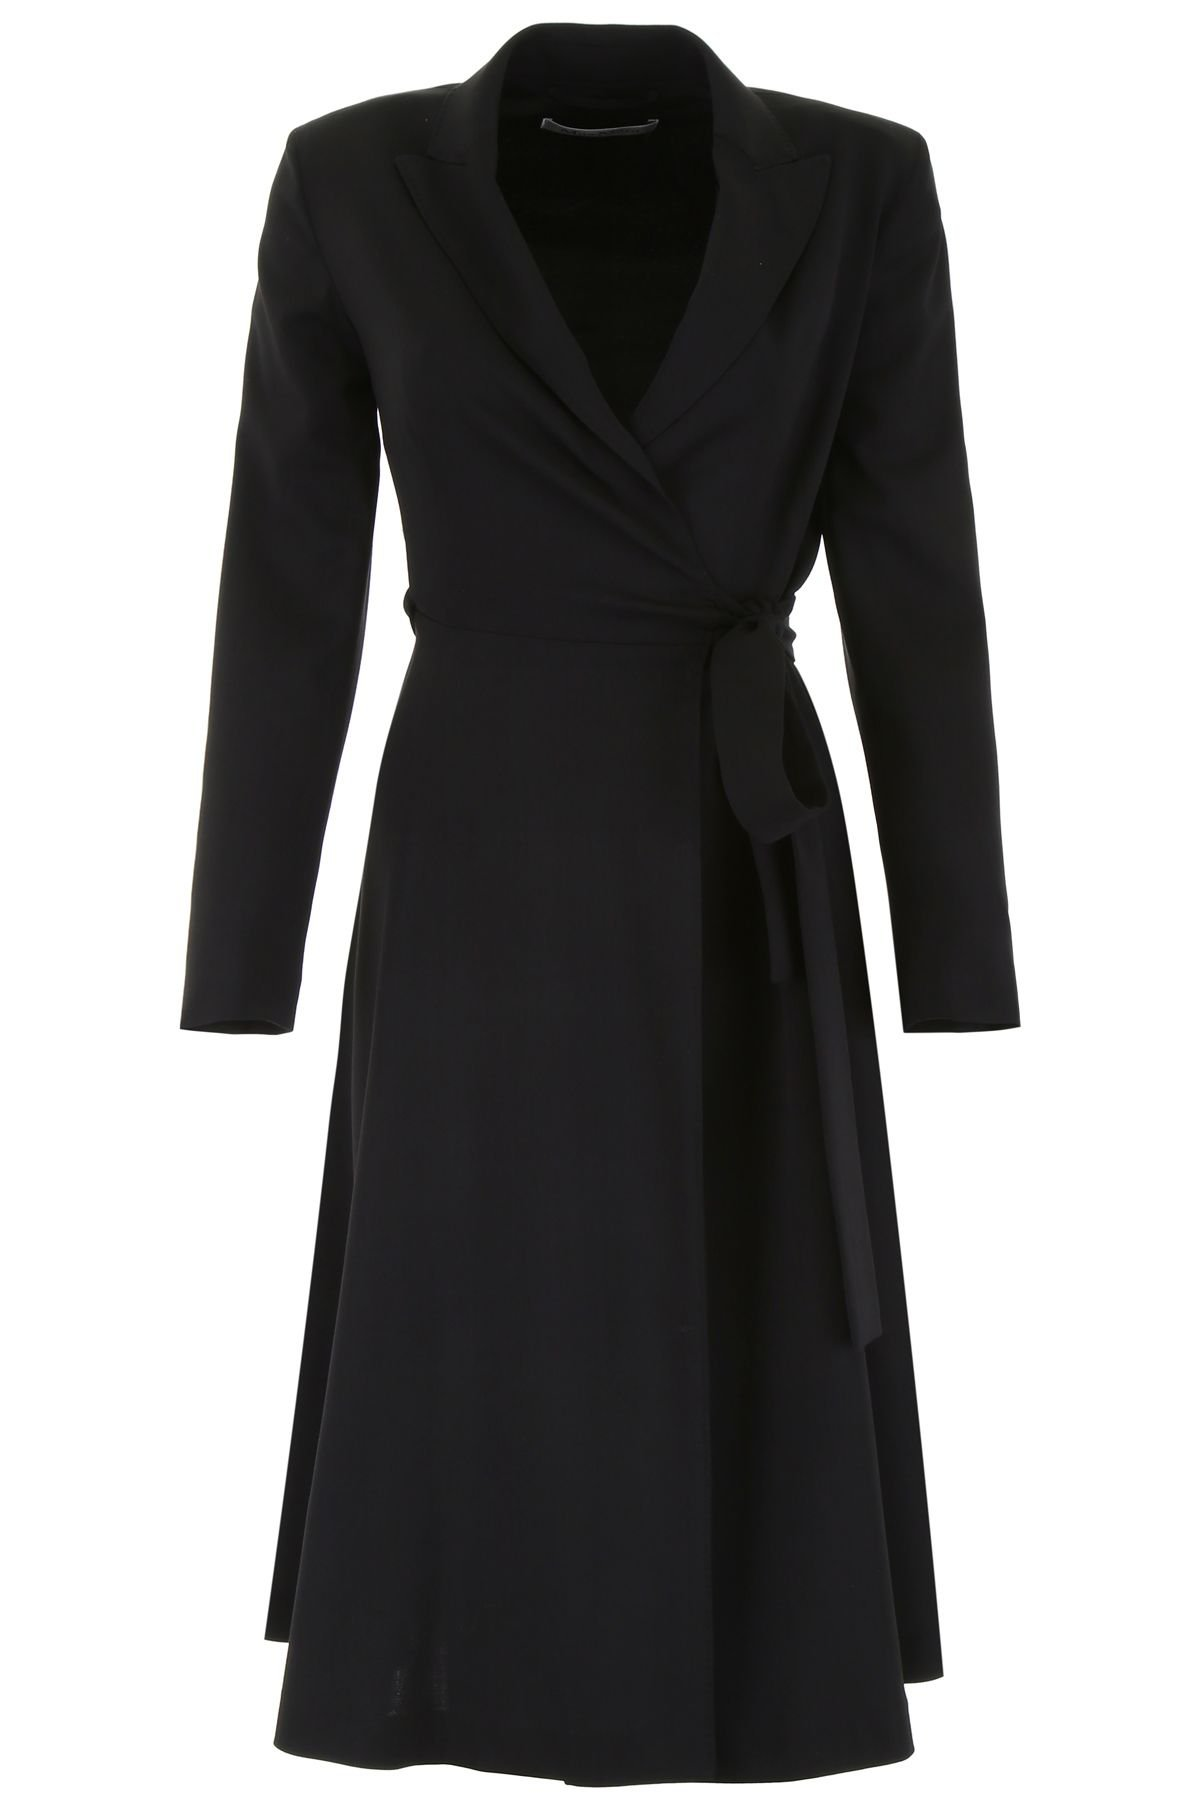 Max Mara Wrap Dress